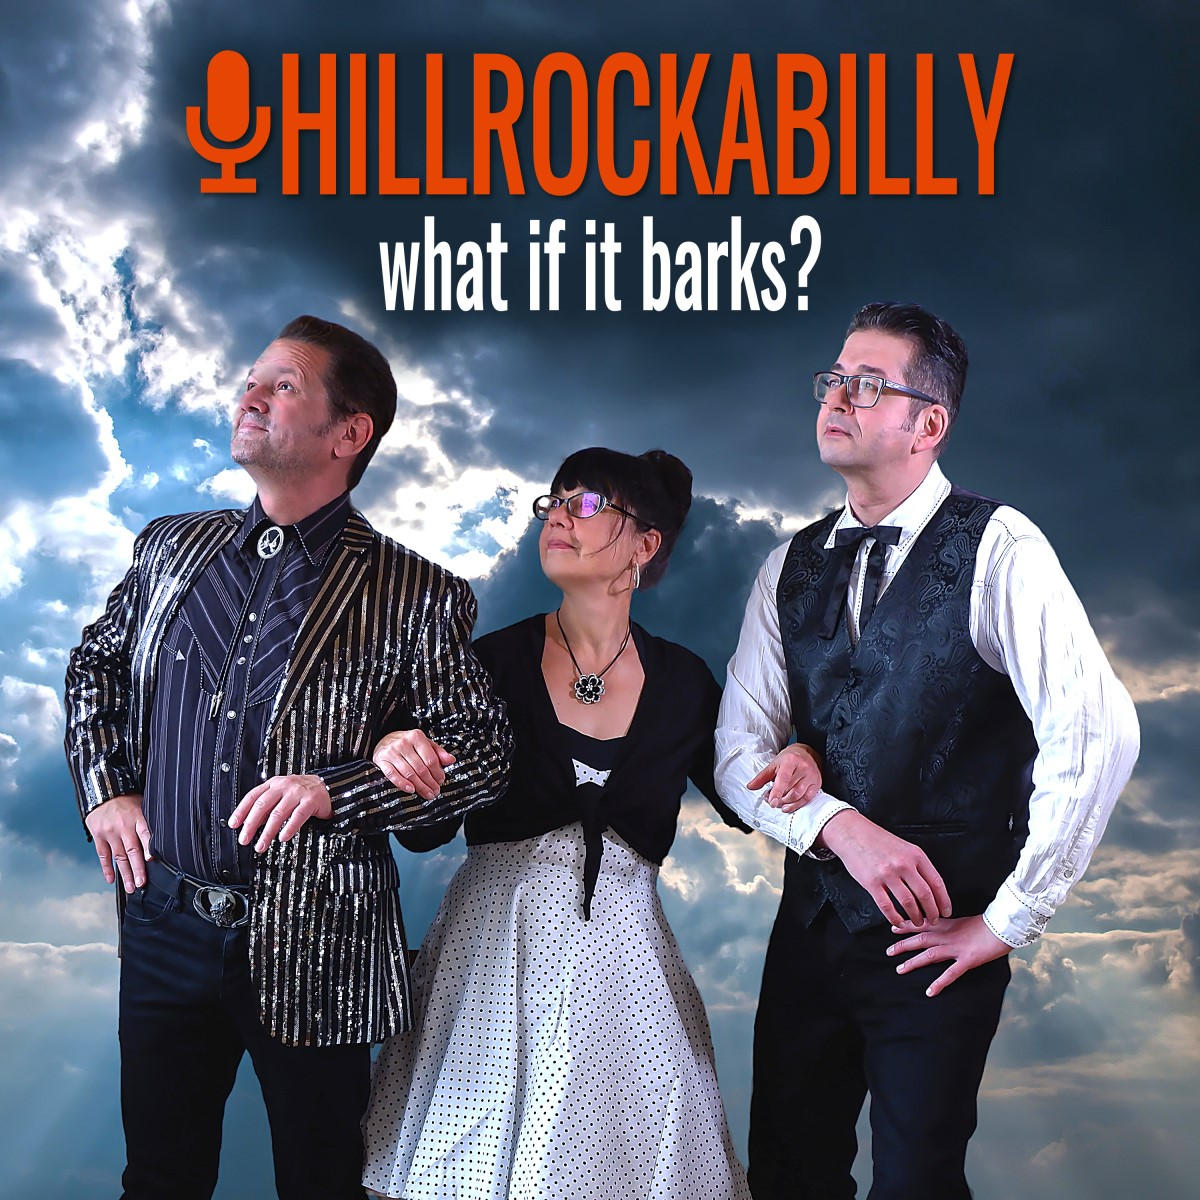 Download music release Hillrockabilly - what if it barks?